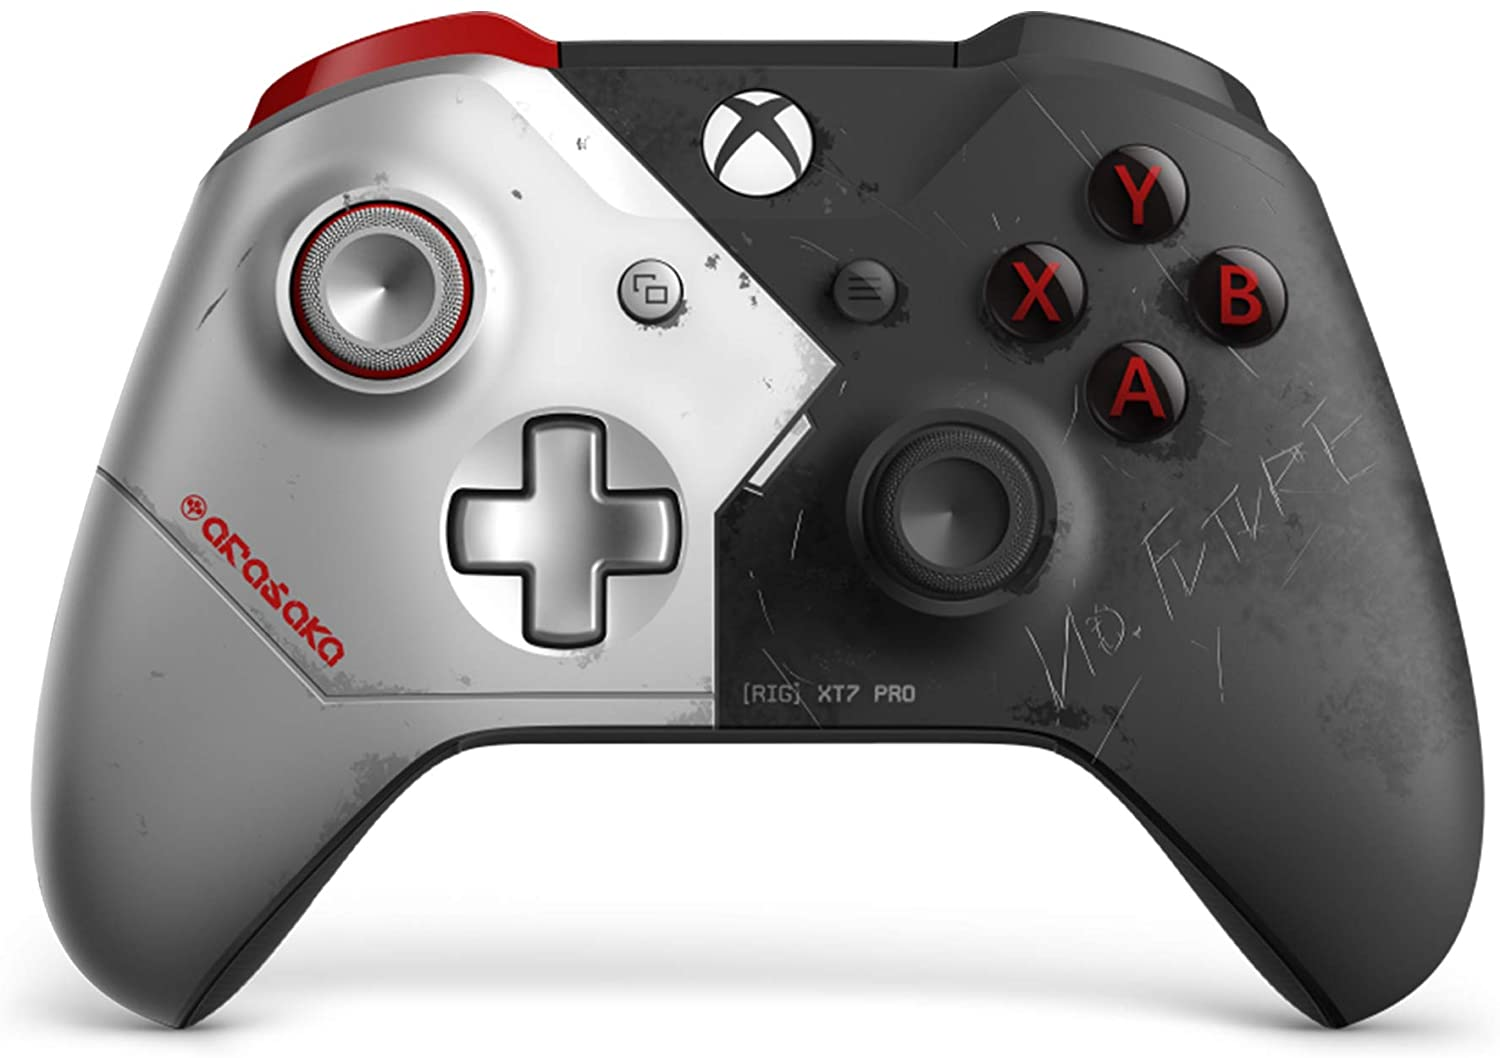 New Limited Edition Xbox Controller For Cyberpunk 2077 Shows Up On Amazon That Has A SIlverhand-Inspired Design